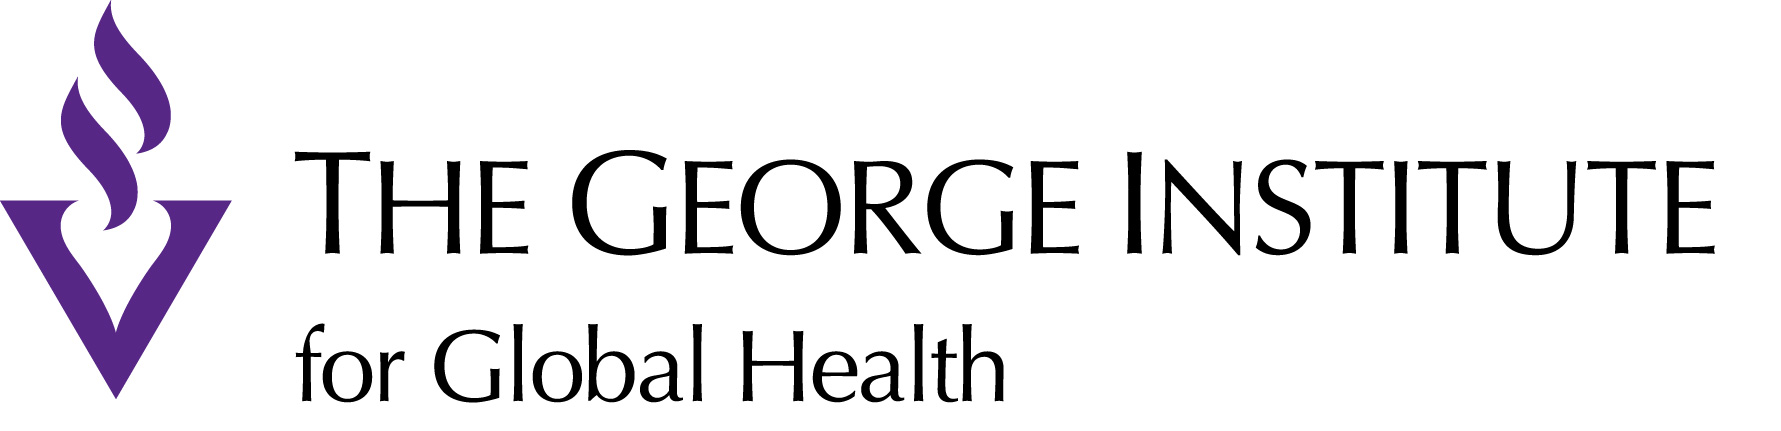 the_george